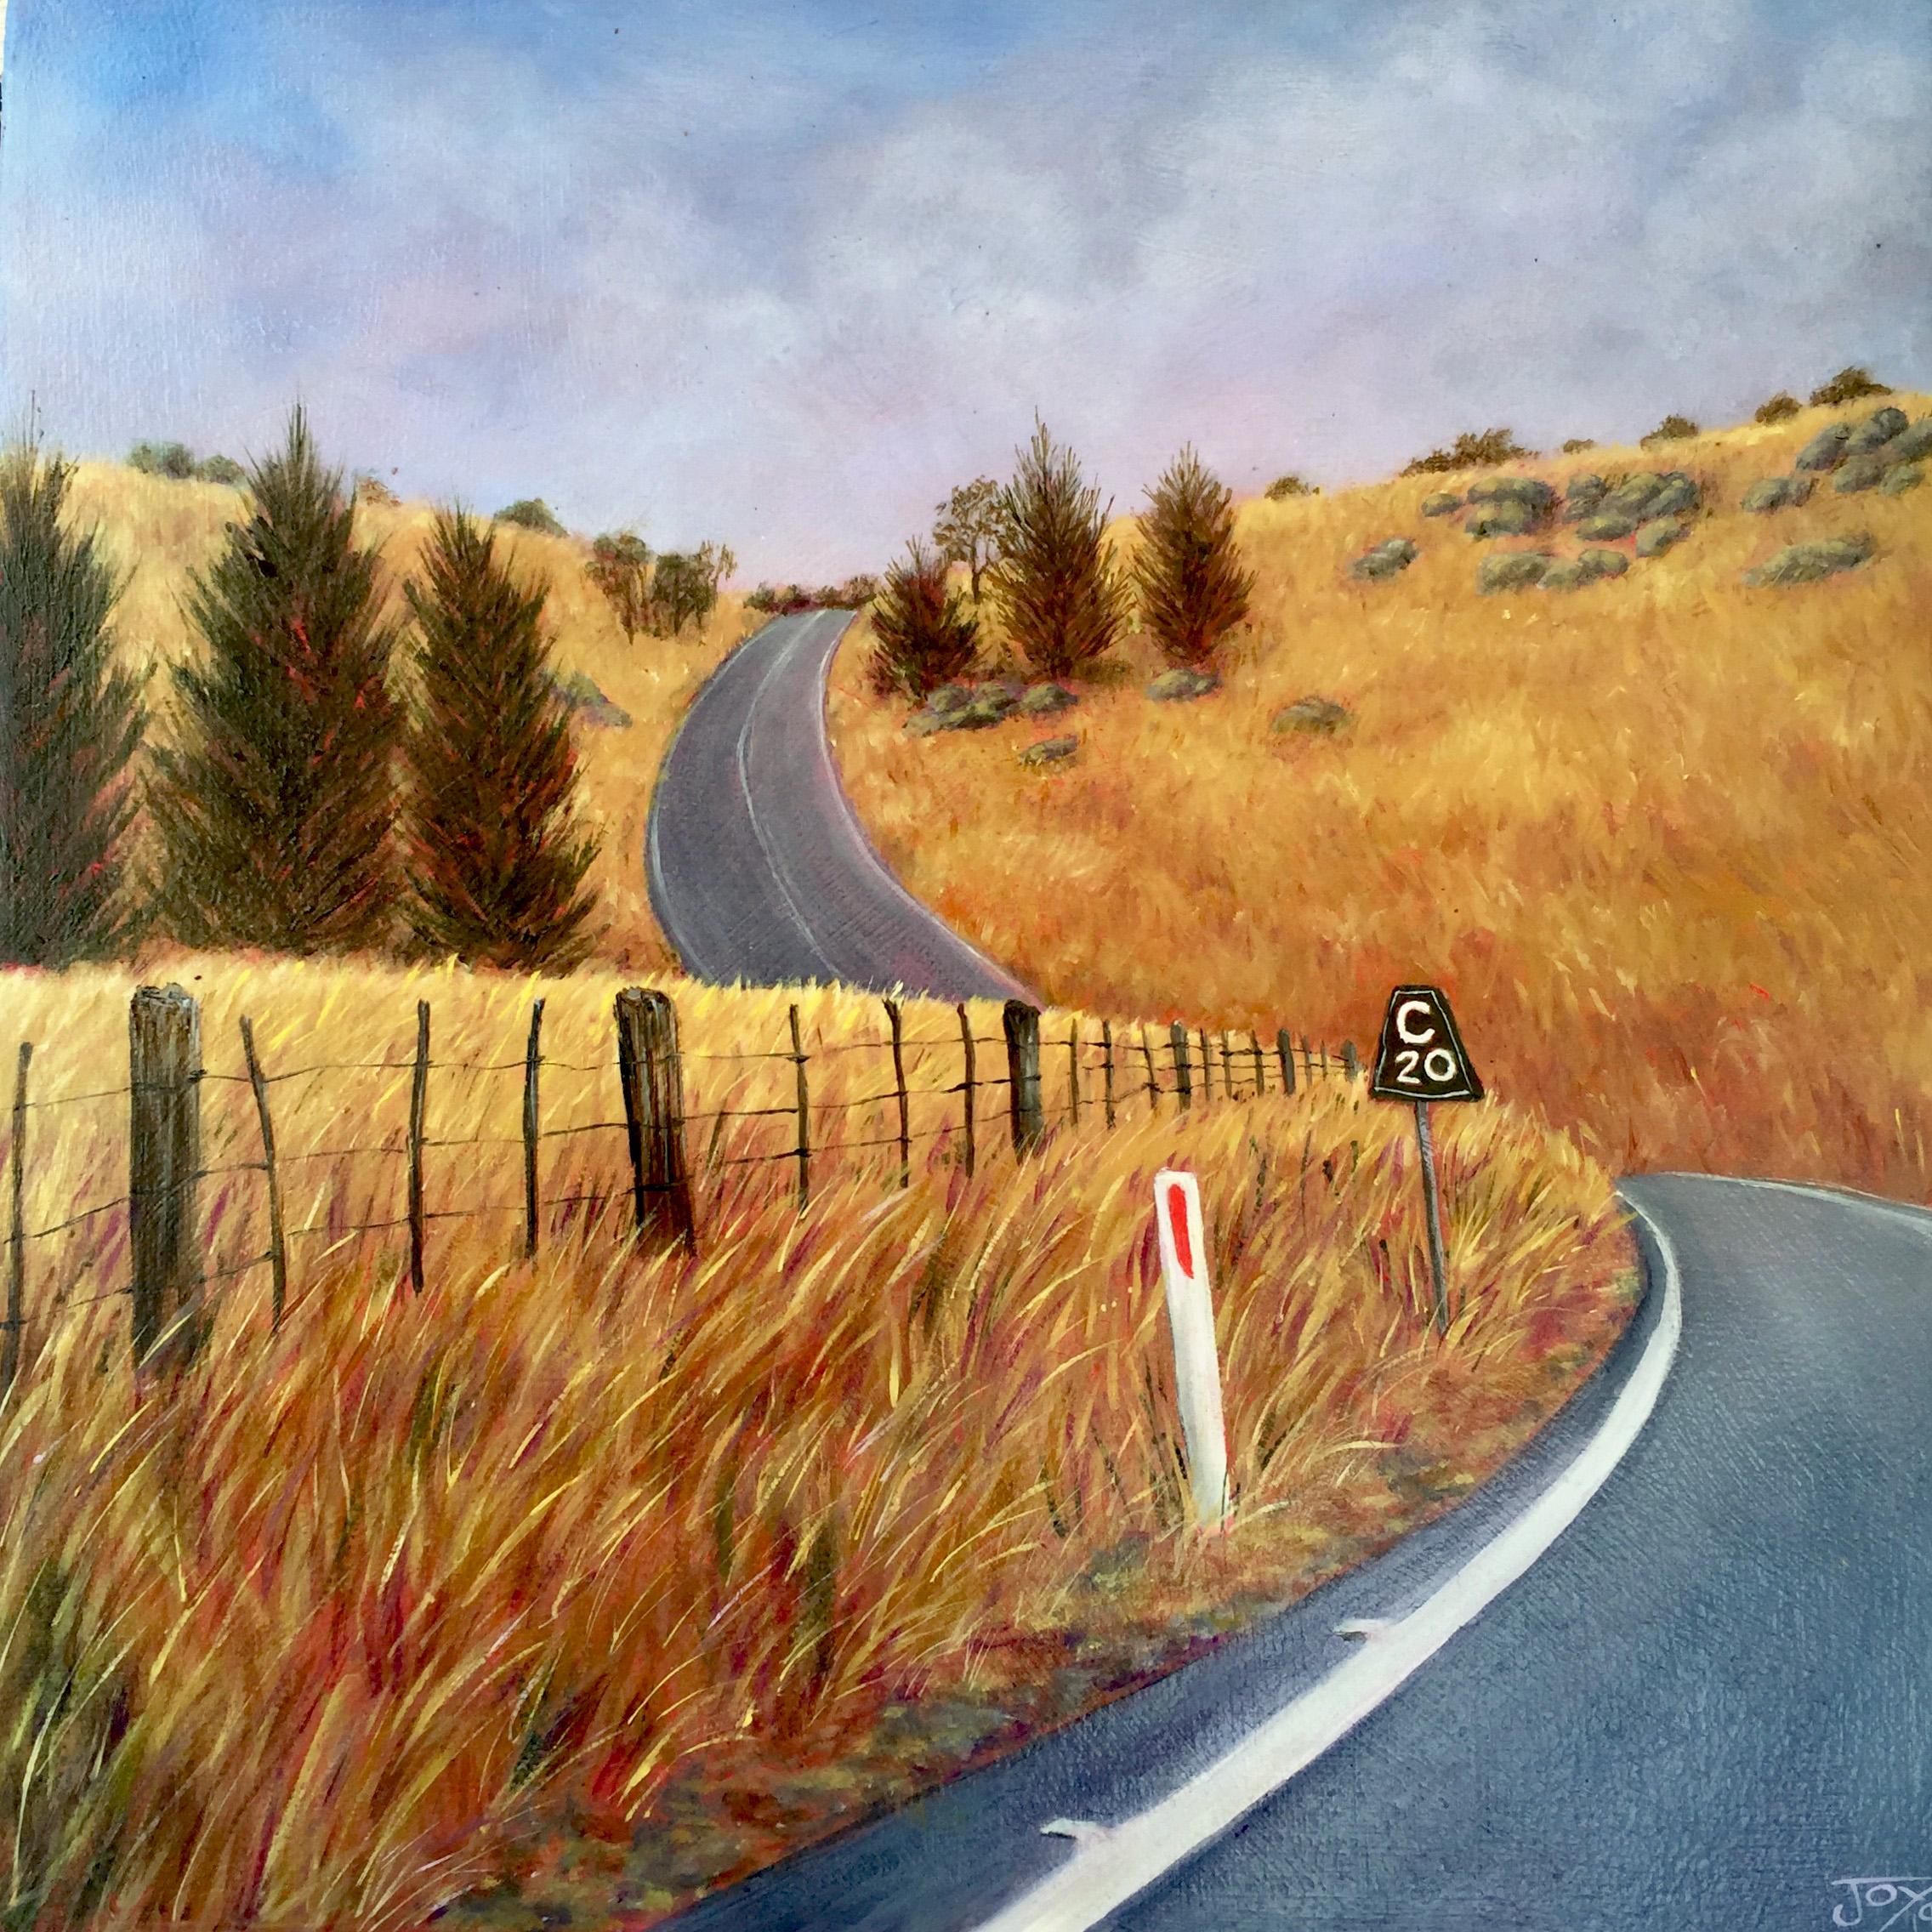 20 Clicks to Canberra, oil on canvas 30X30cm